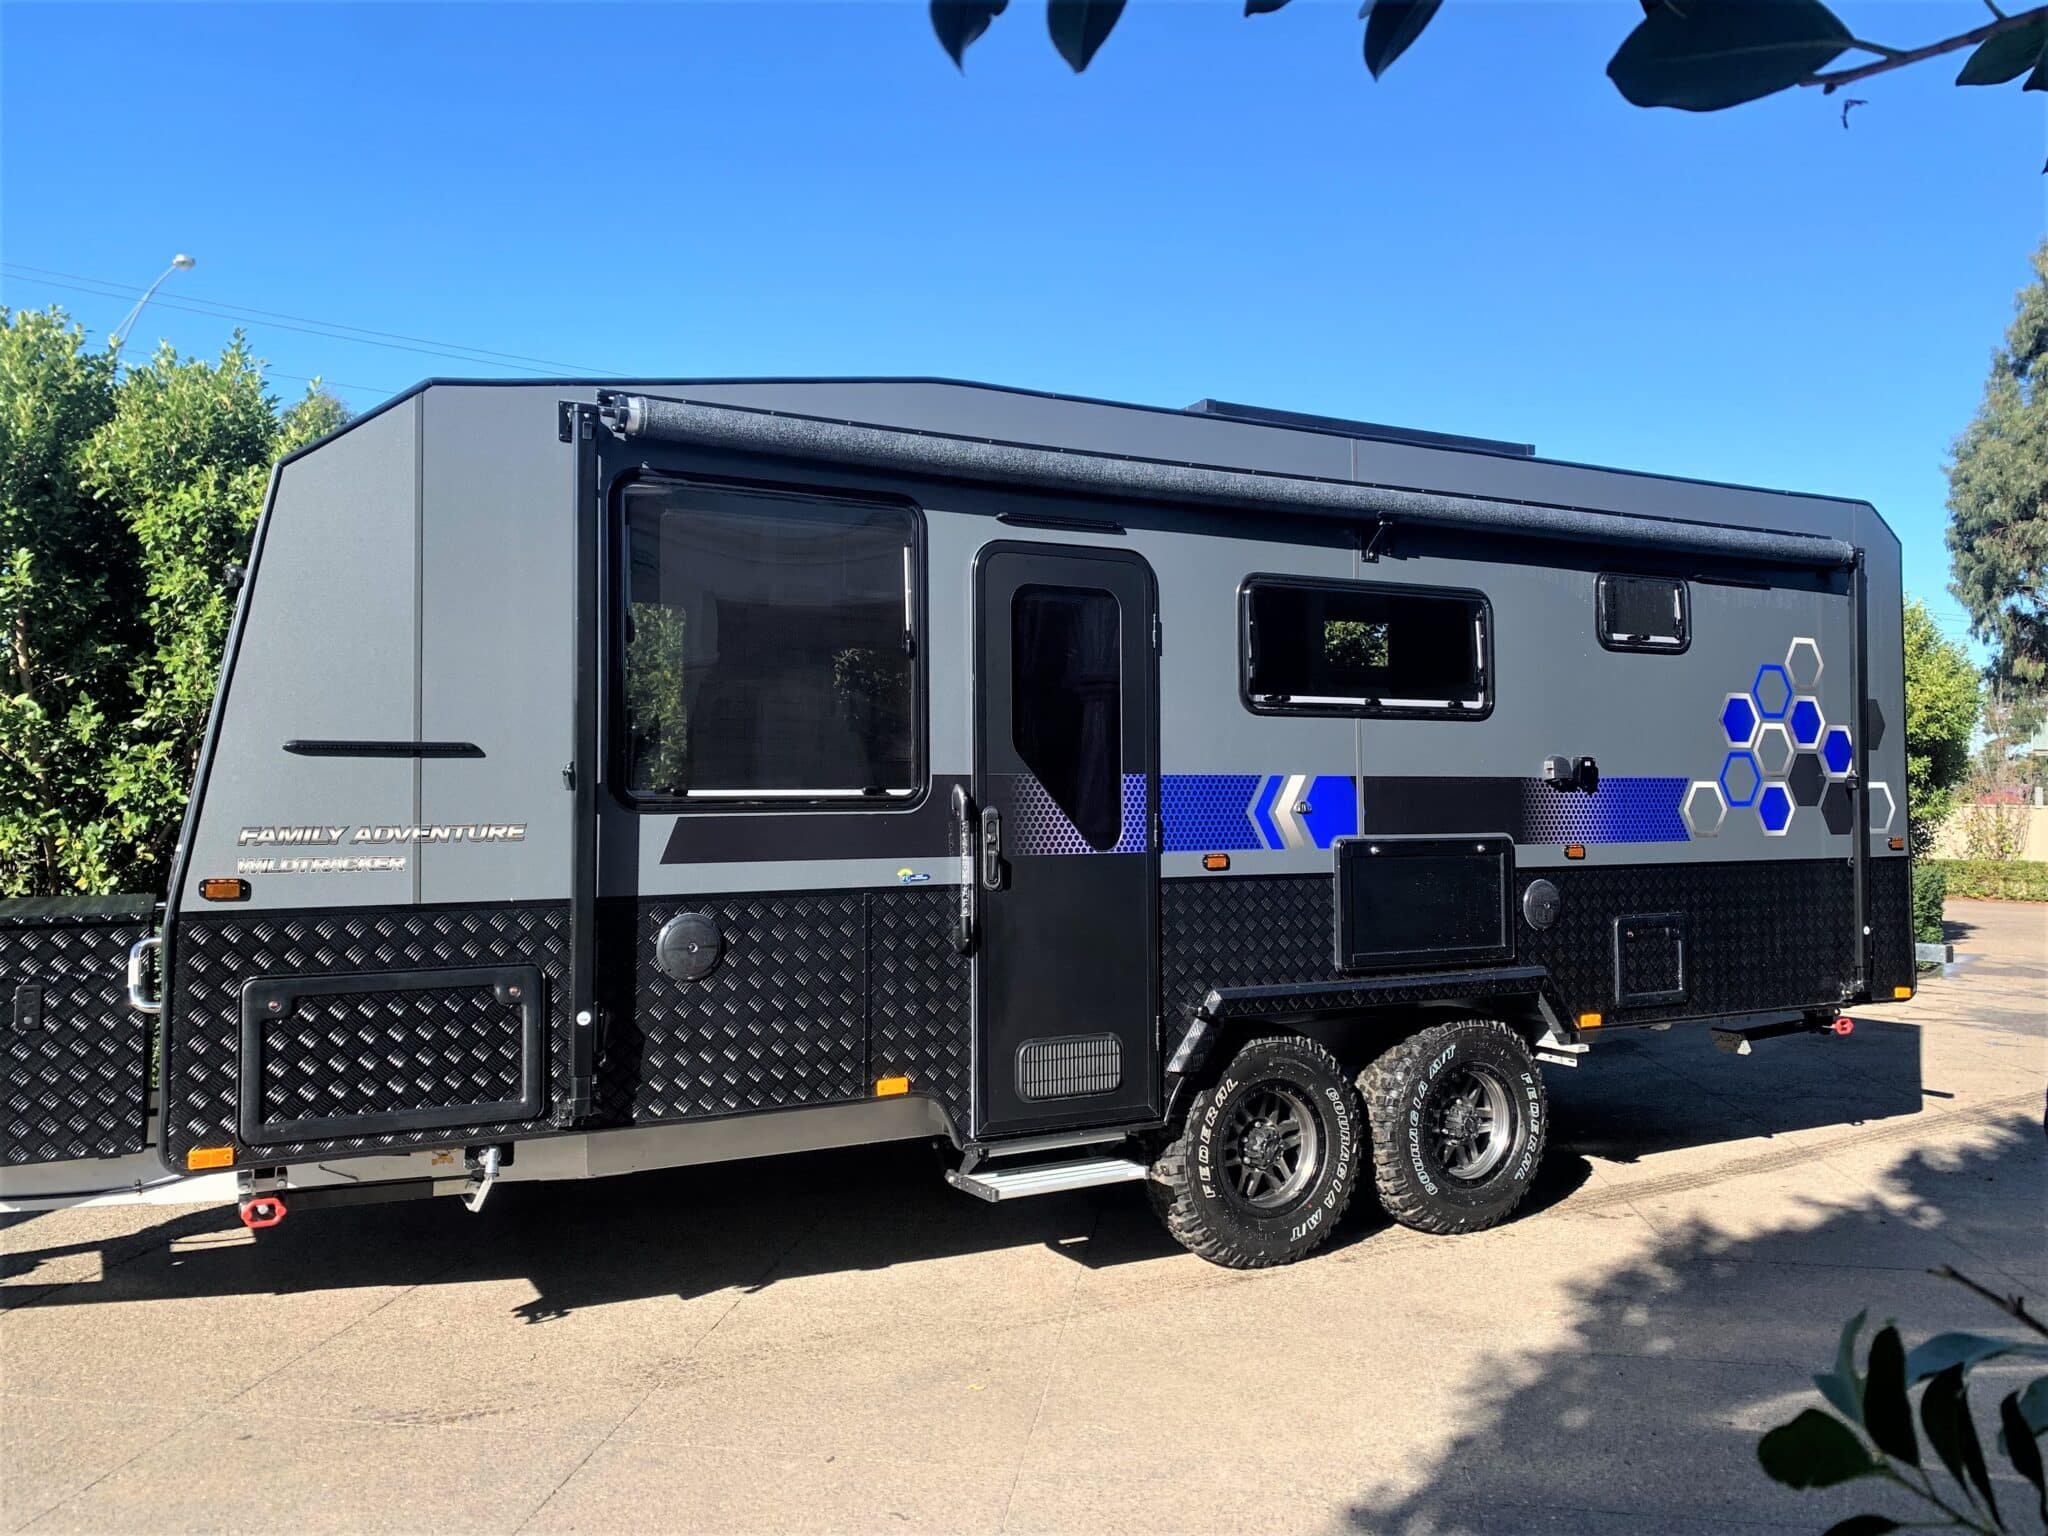 New in stock 2021 Malibu Family Wildtracker 21 ft Full Off Road 4 berth shower and toilet Family double bunk caravan